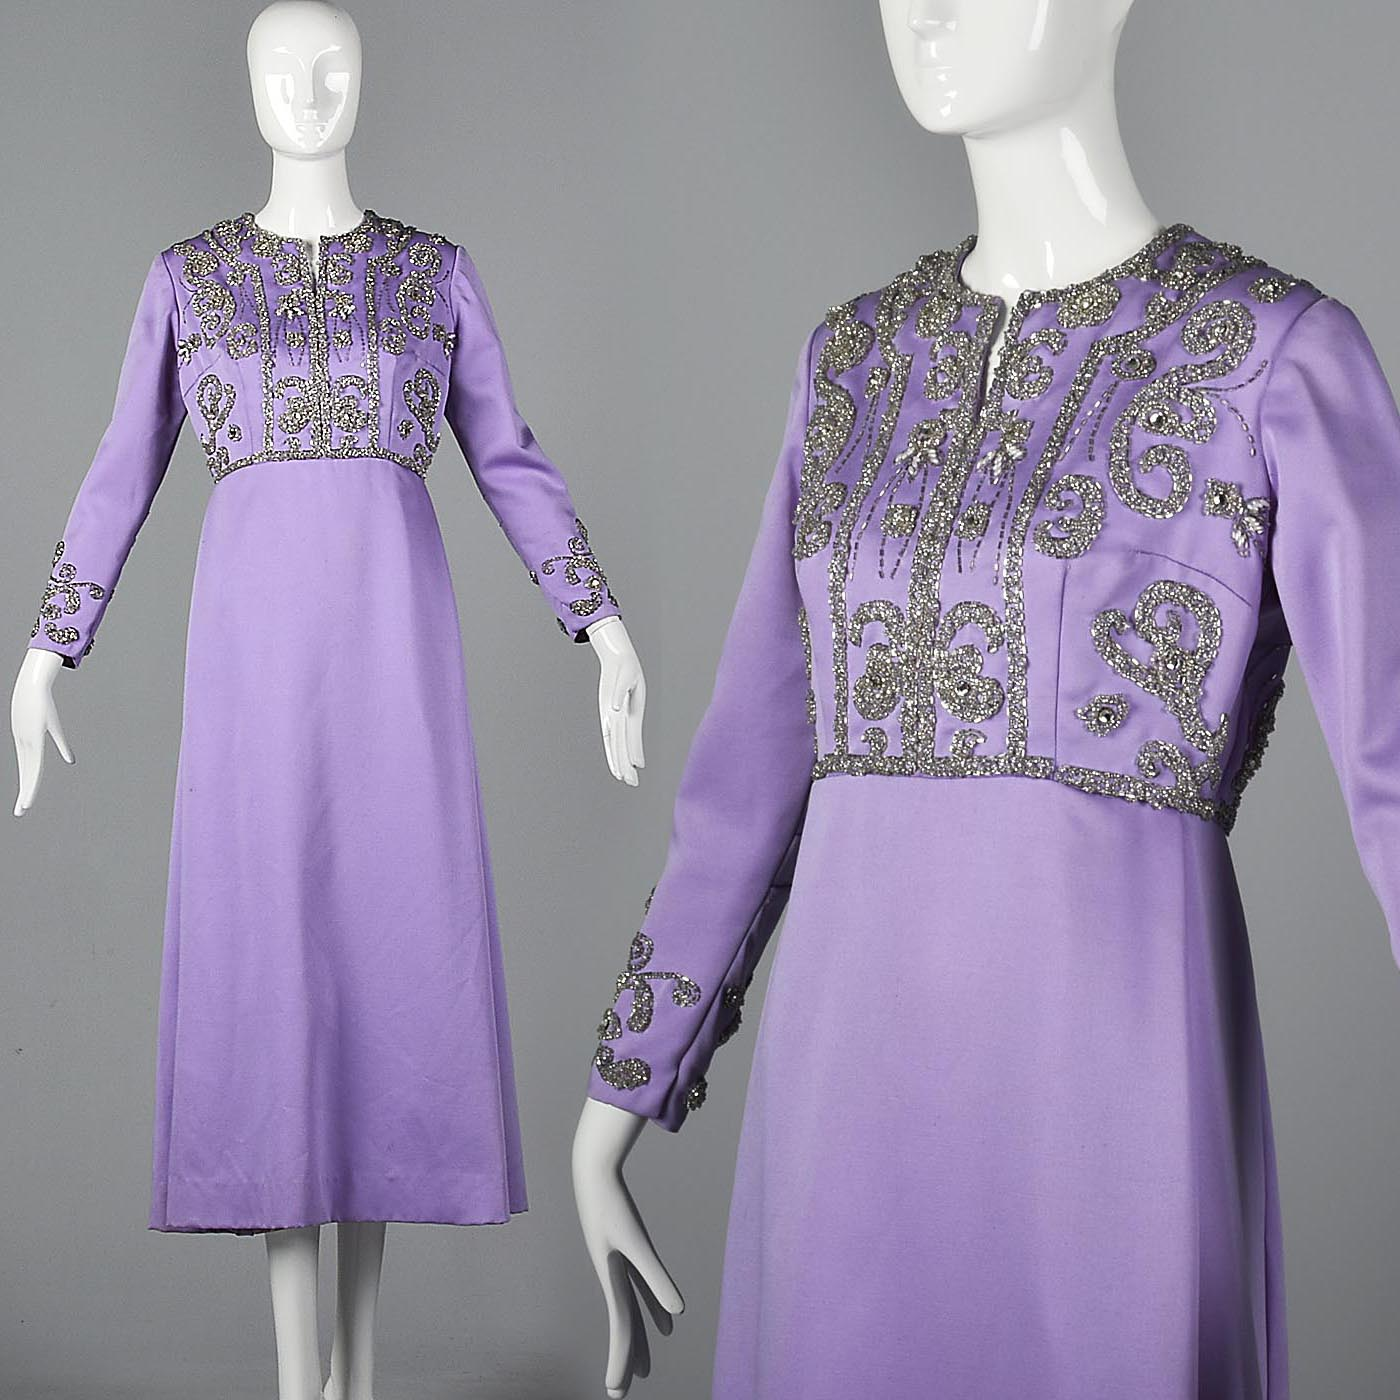 1960s Purple Statin Maxi Dress with Beaded Bodice